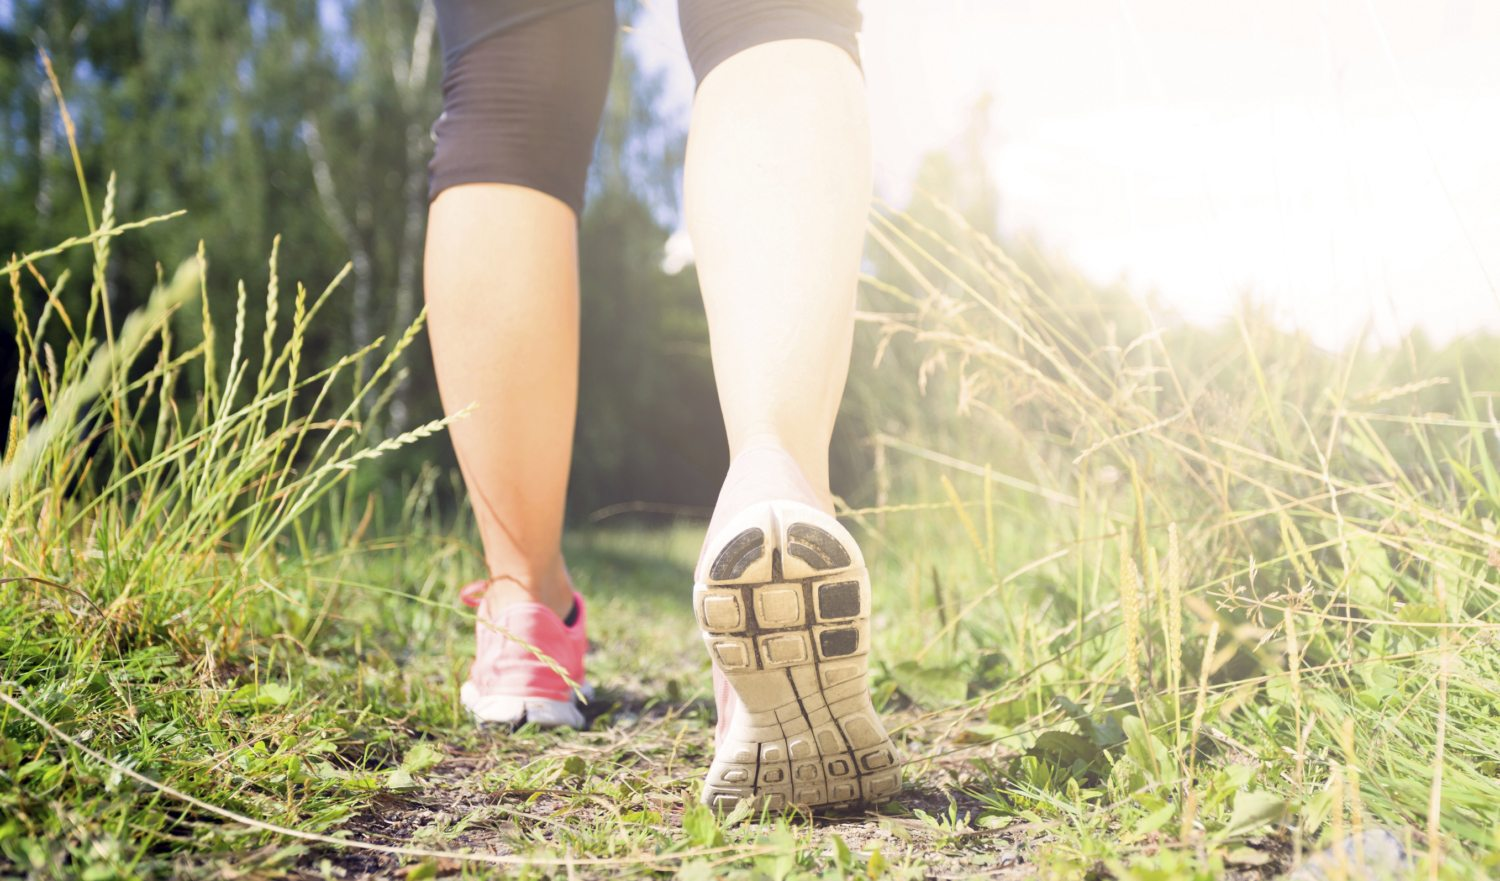 Walking or running exercise, legs on green grass footpath in forest, achievement fitness adventure and exercising in spring or summer nature